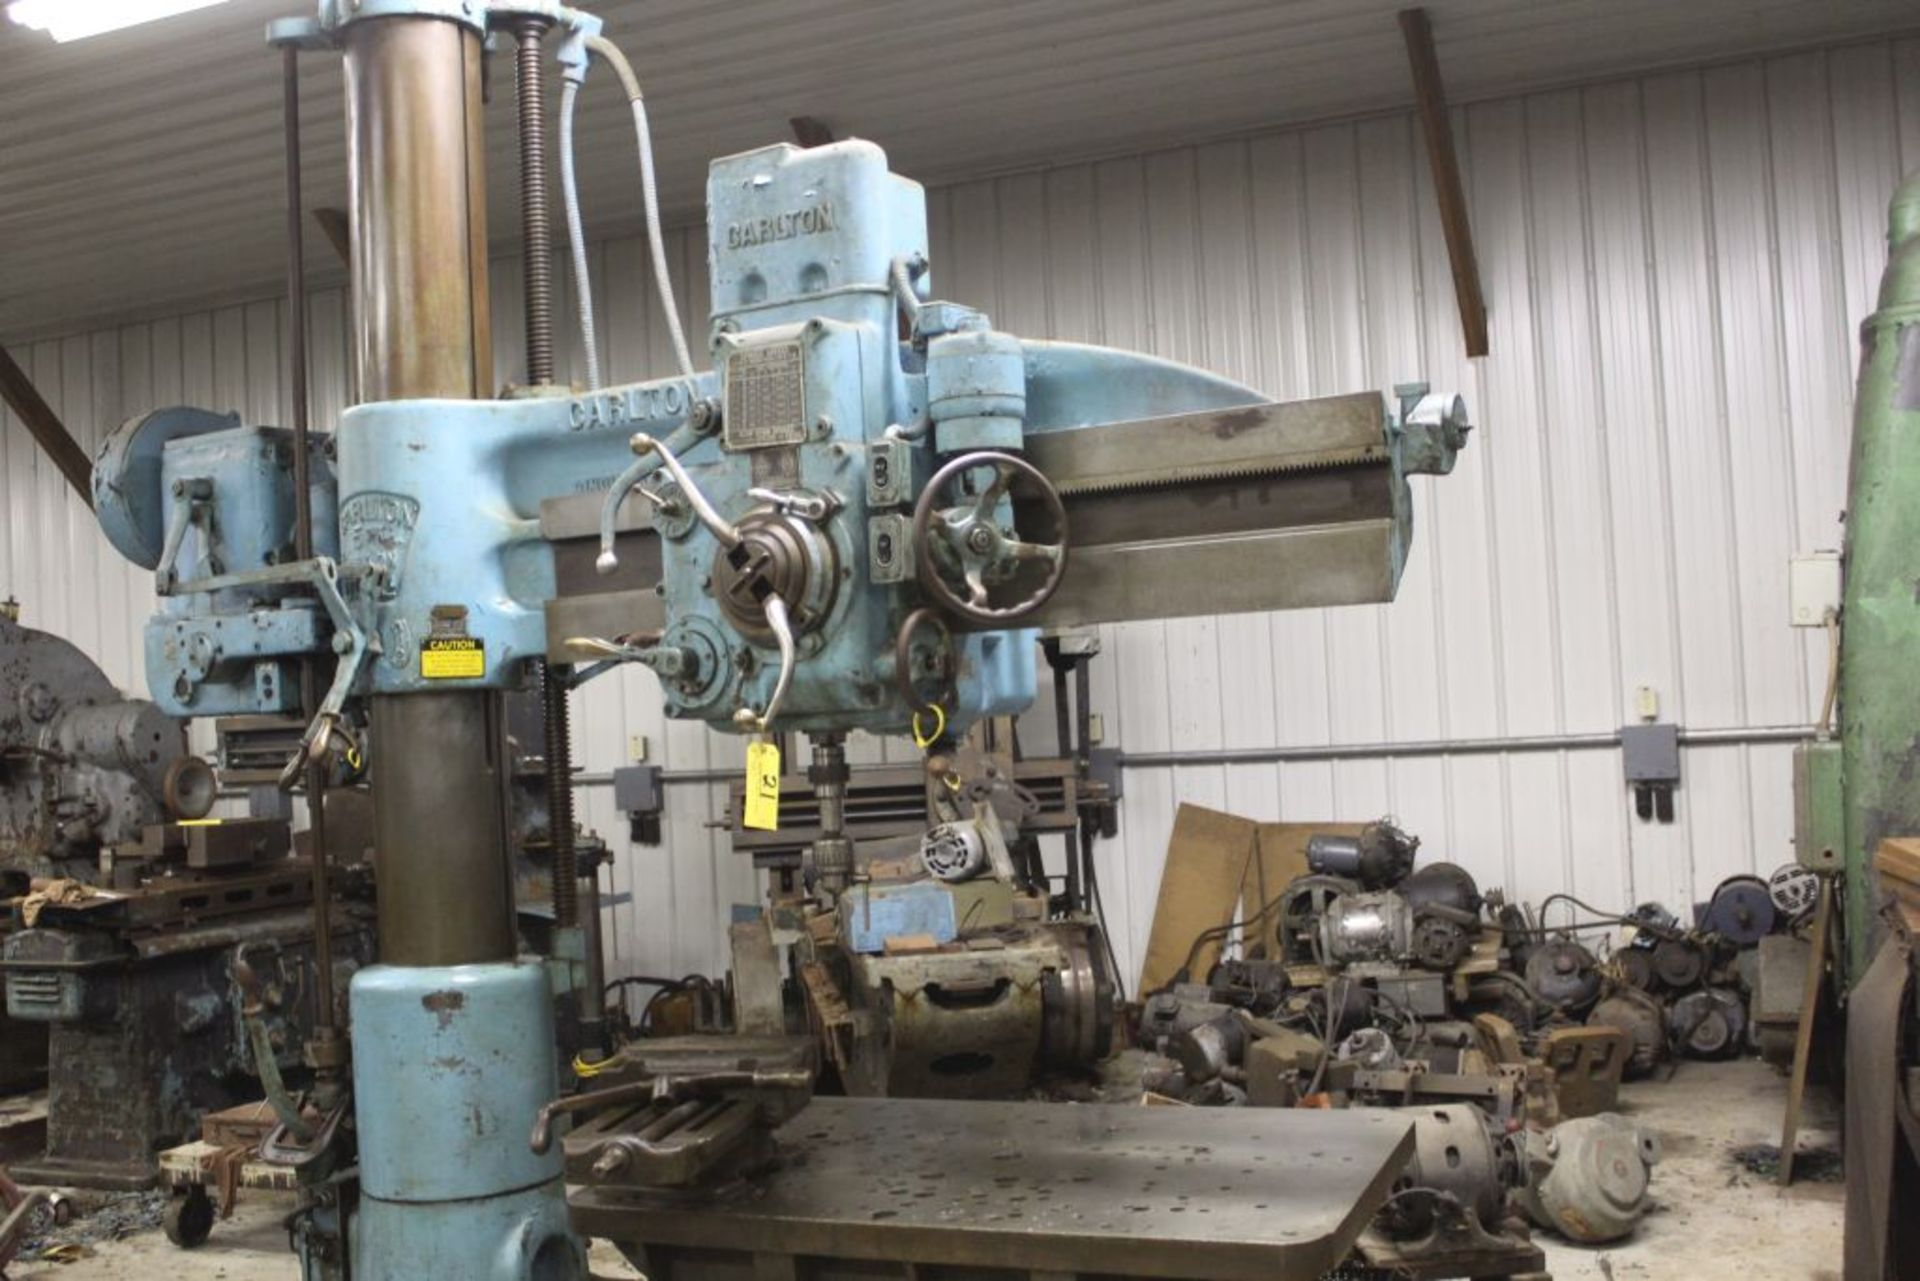 """Carlton radial arm drill, 5' arm, 11"""" column, 9' 9"""" total height, 36"""" x 53"""" bed, misc. tooling. - Image 2 of 8"""